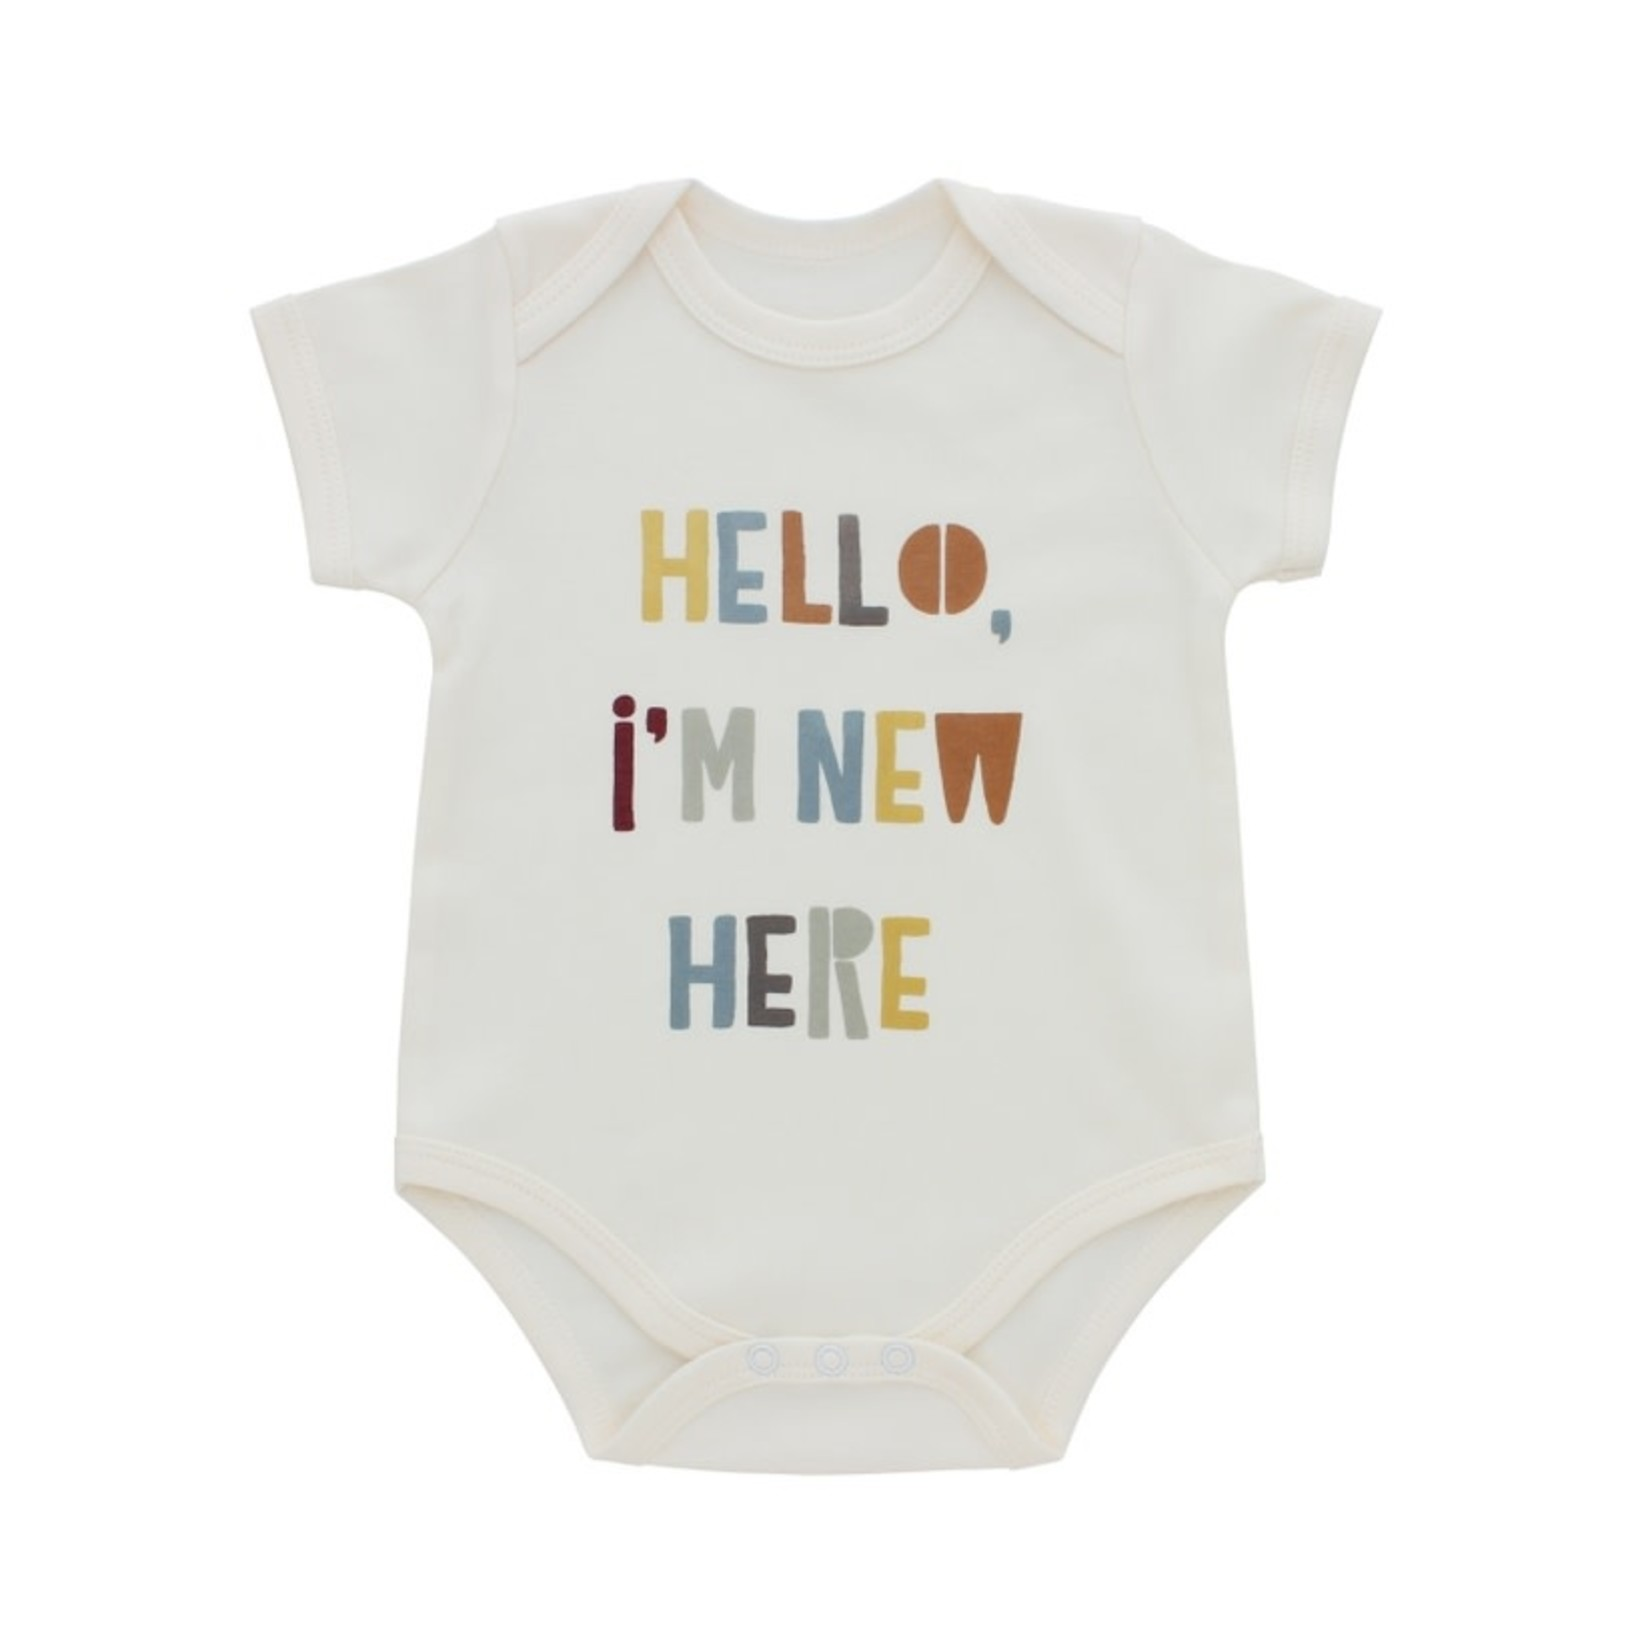 Emerson and Friends Hello I'm New Here Onesie 0-3M